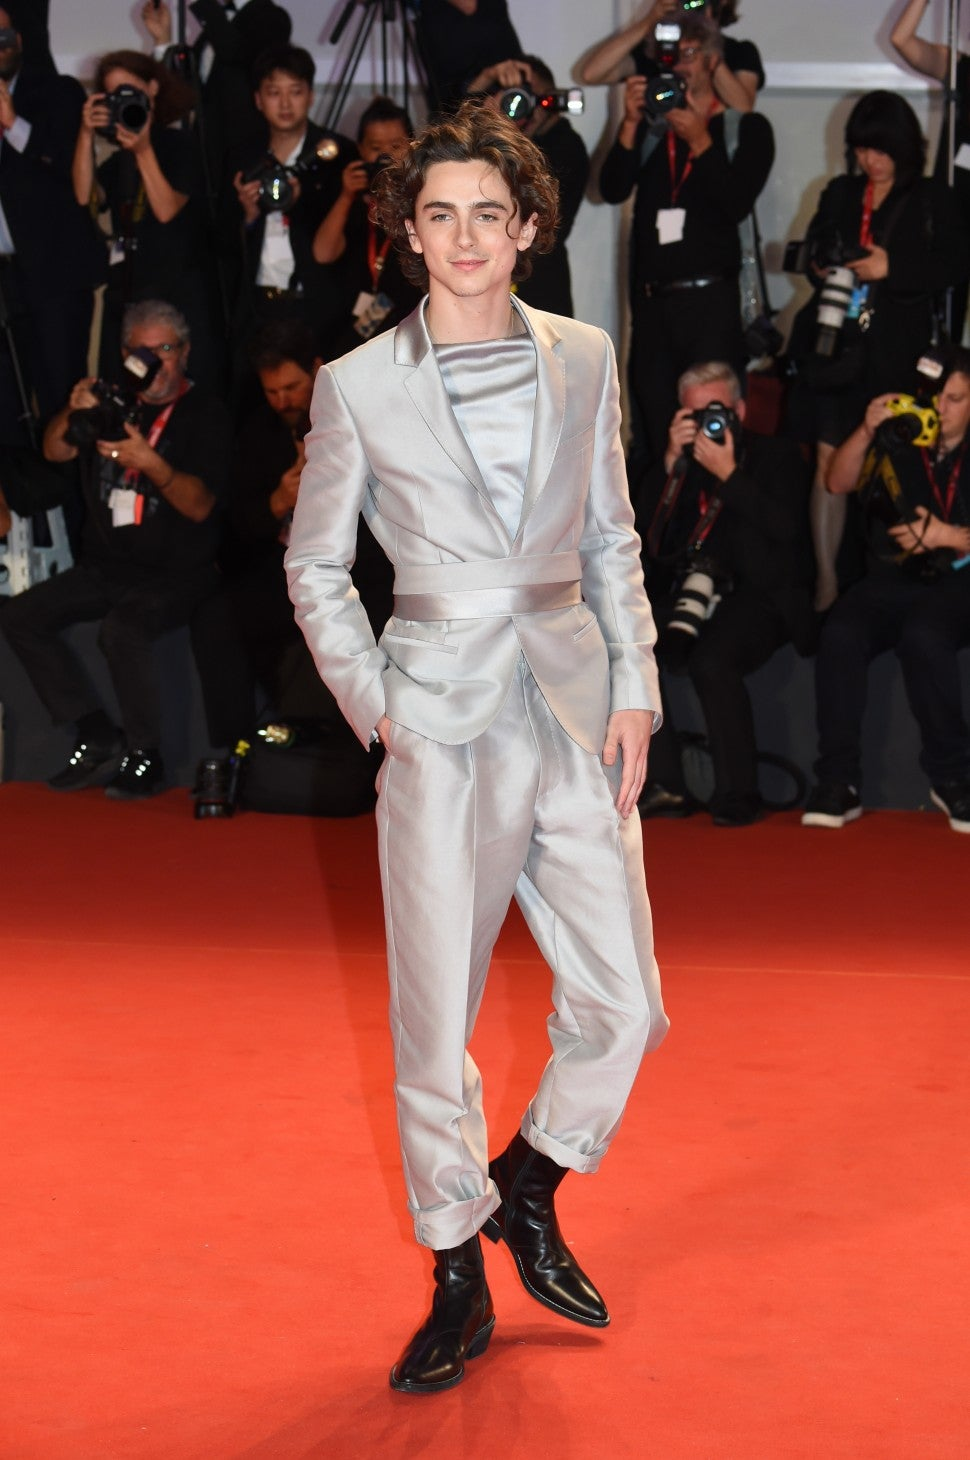 Timothee Chalamet at Venice Film Festival 2019 The King screening